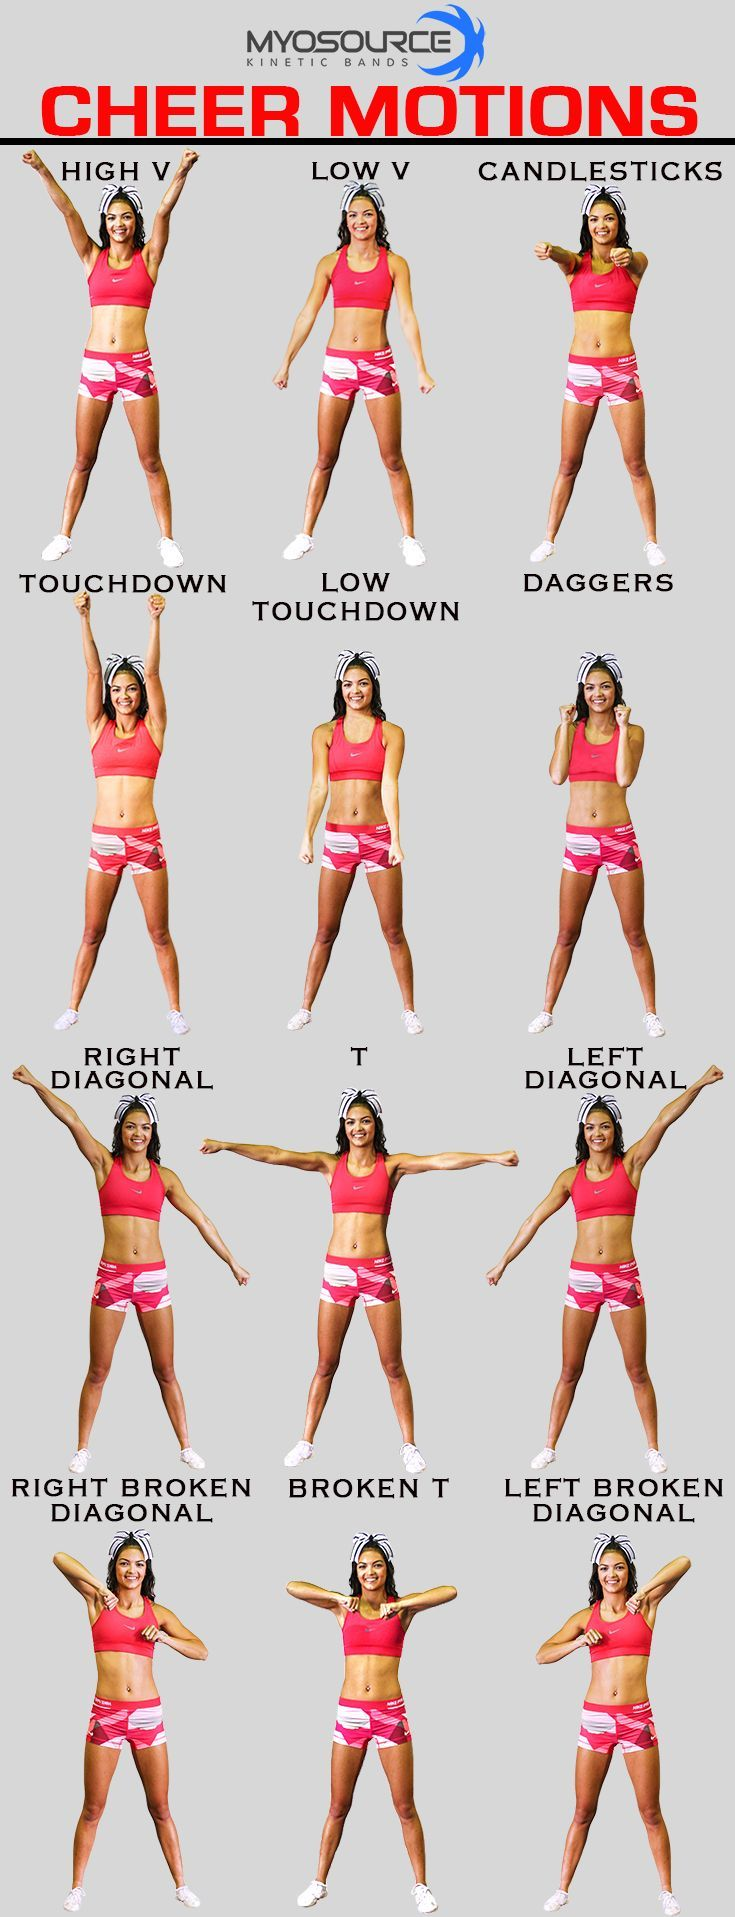 Cheer kinetic bands with training dvd cheerleading tips tricks cheerleading tips practice your motions for cheerleading tryouts and use coupon code pinit15 for 15 off cheerleading equipment to improve jumps fandeluxe Images